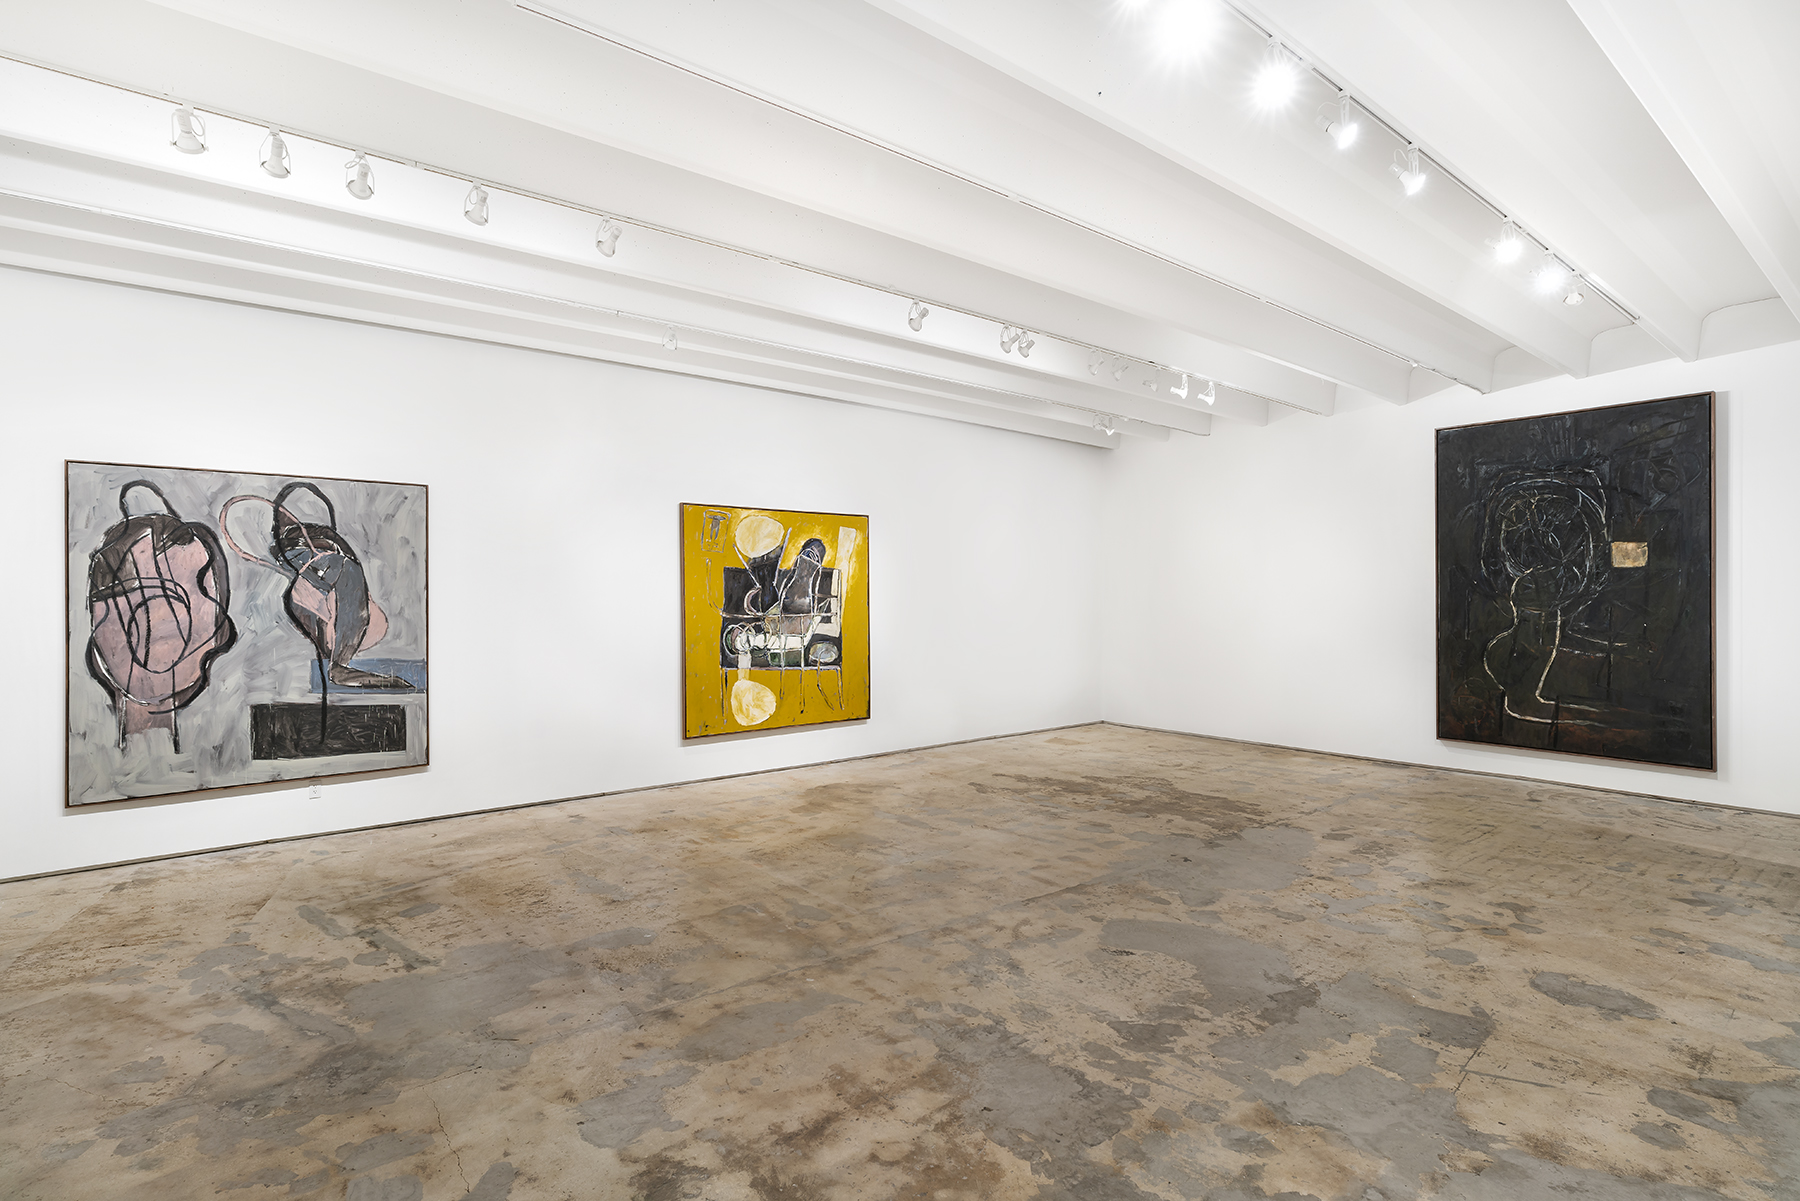 Carlos Alfonzo: Paintings  at Fredric Snitzer Gallery, installation view (all images courtesy Fredric Snitzer Gallery and all photos by Zach Balber)